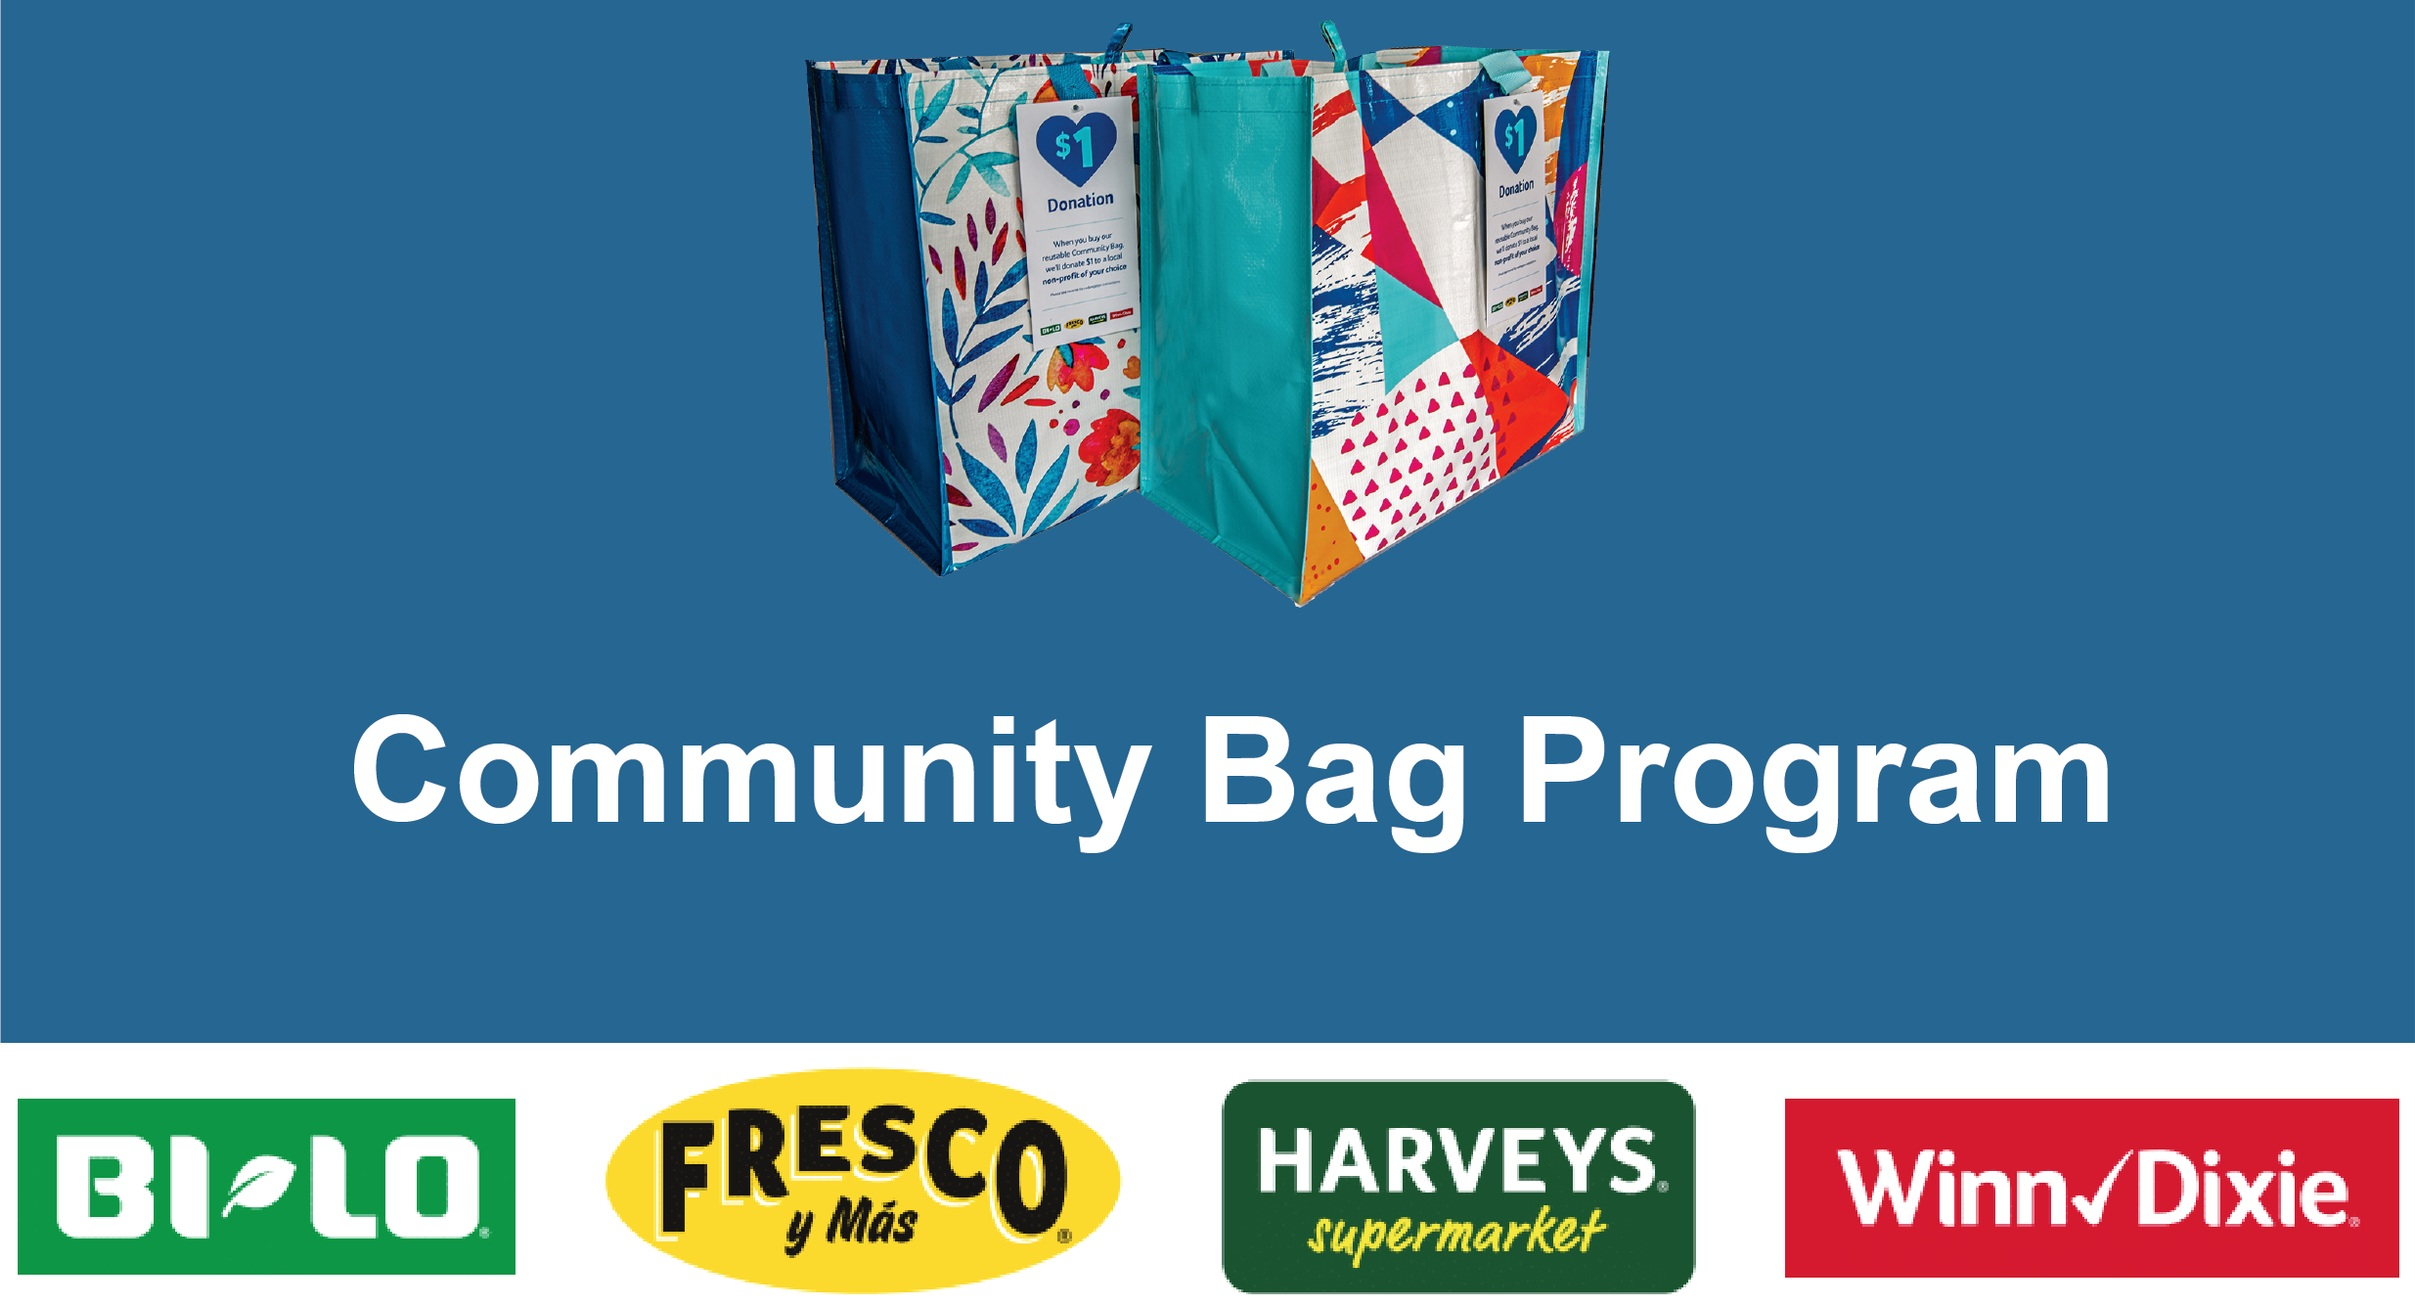 That's My Child will receive a  $1  donation every time a $2.50 reusable Community Bag is sold during the month of June   at the store located at:   Winn-Dixie 7946 Vaughn Road, Montgomery AL